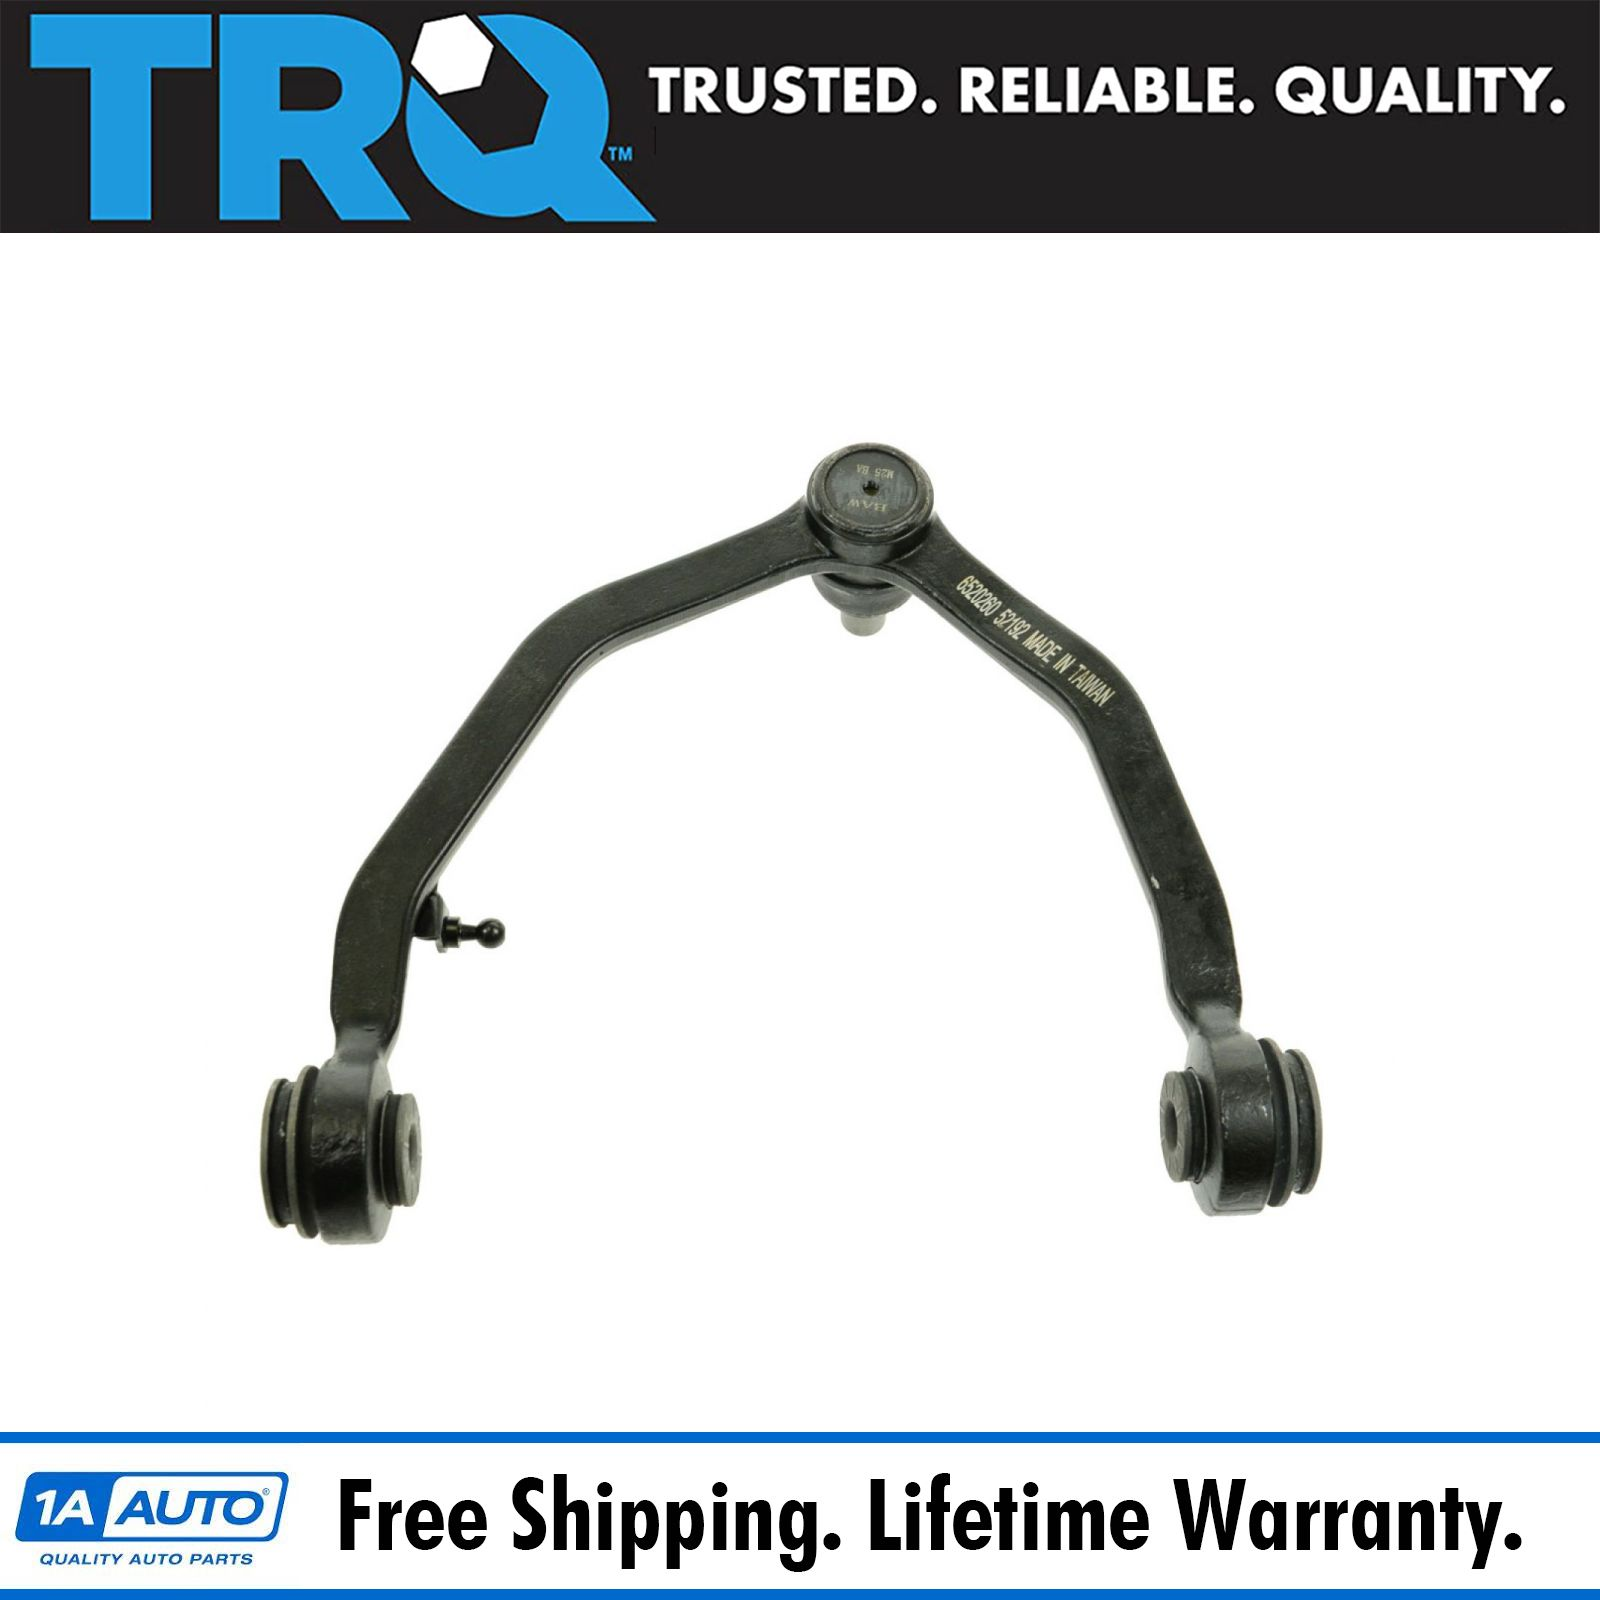 Suspension Control Arm for 93-98 Toyota T100 Front Upper LH=RH Side